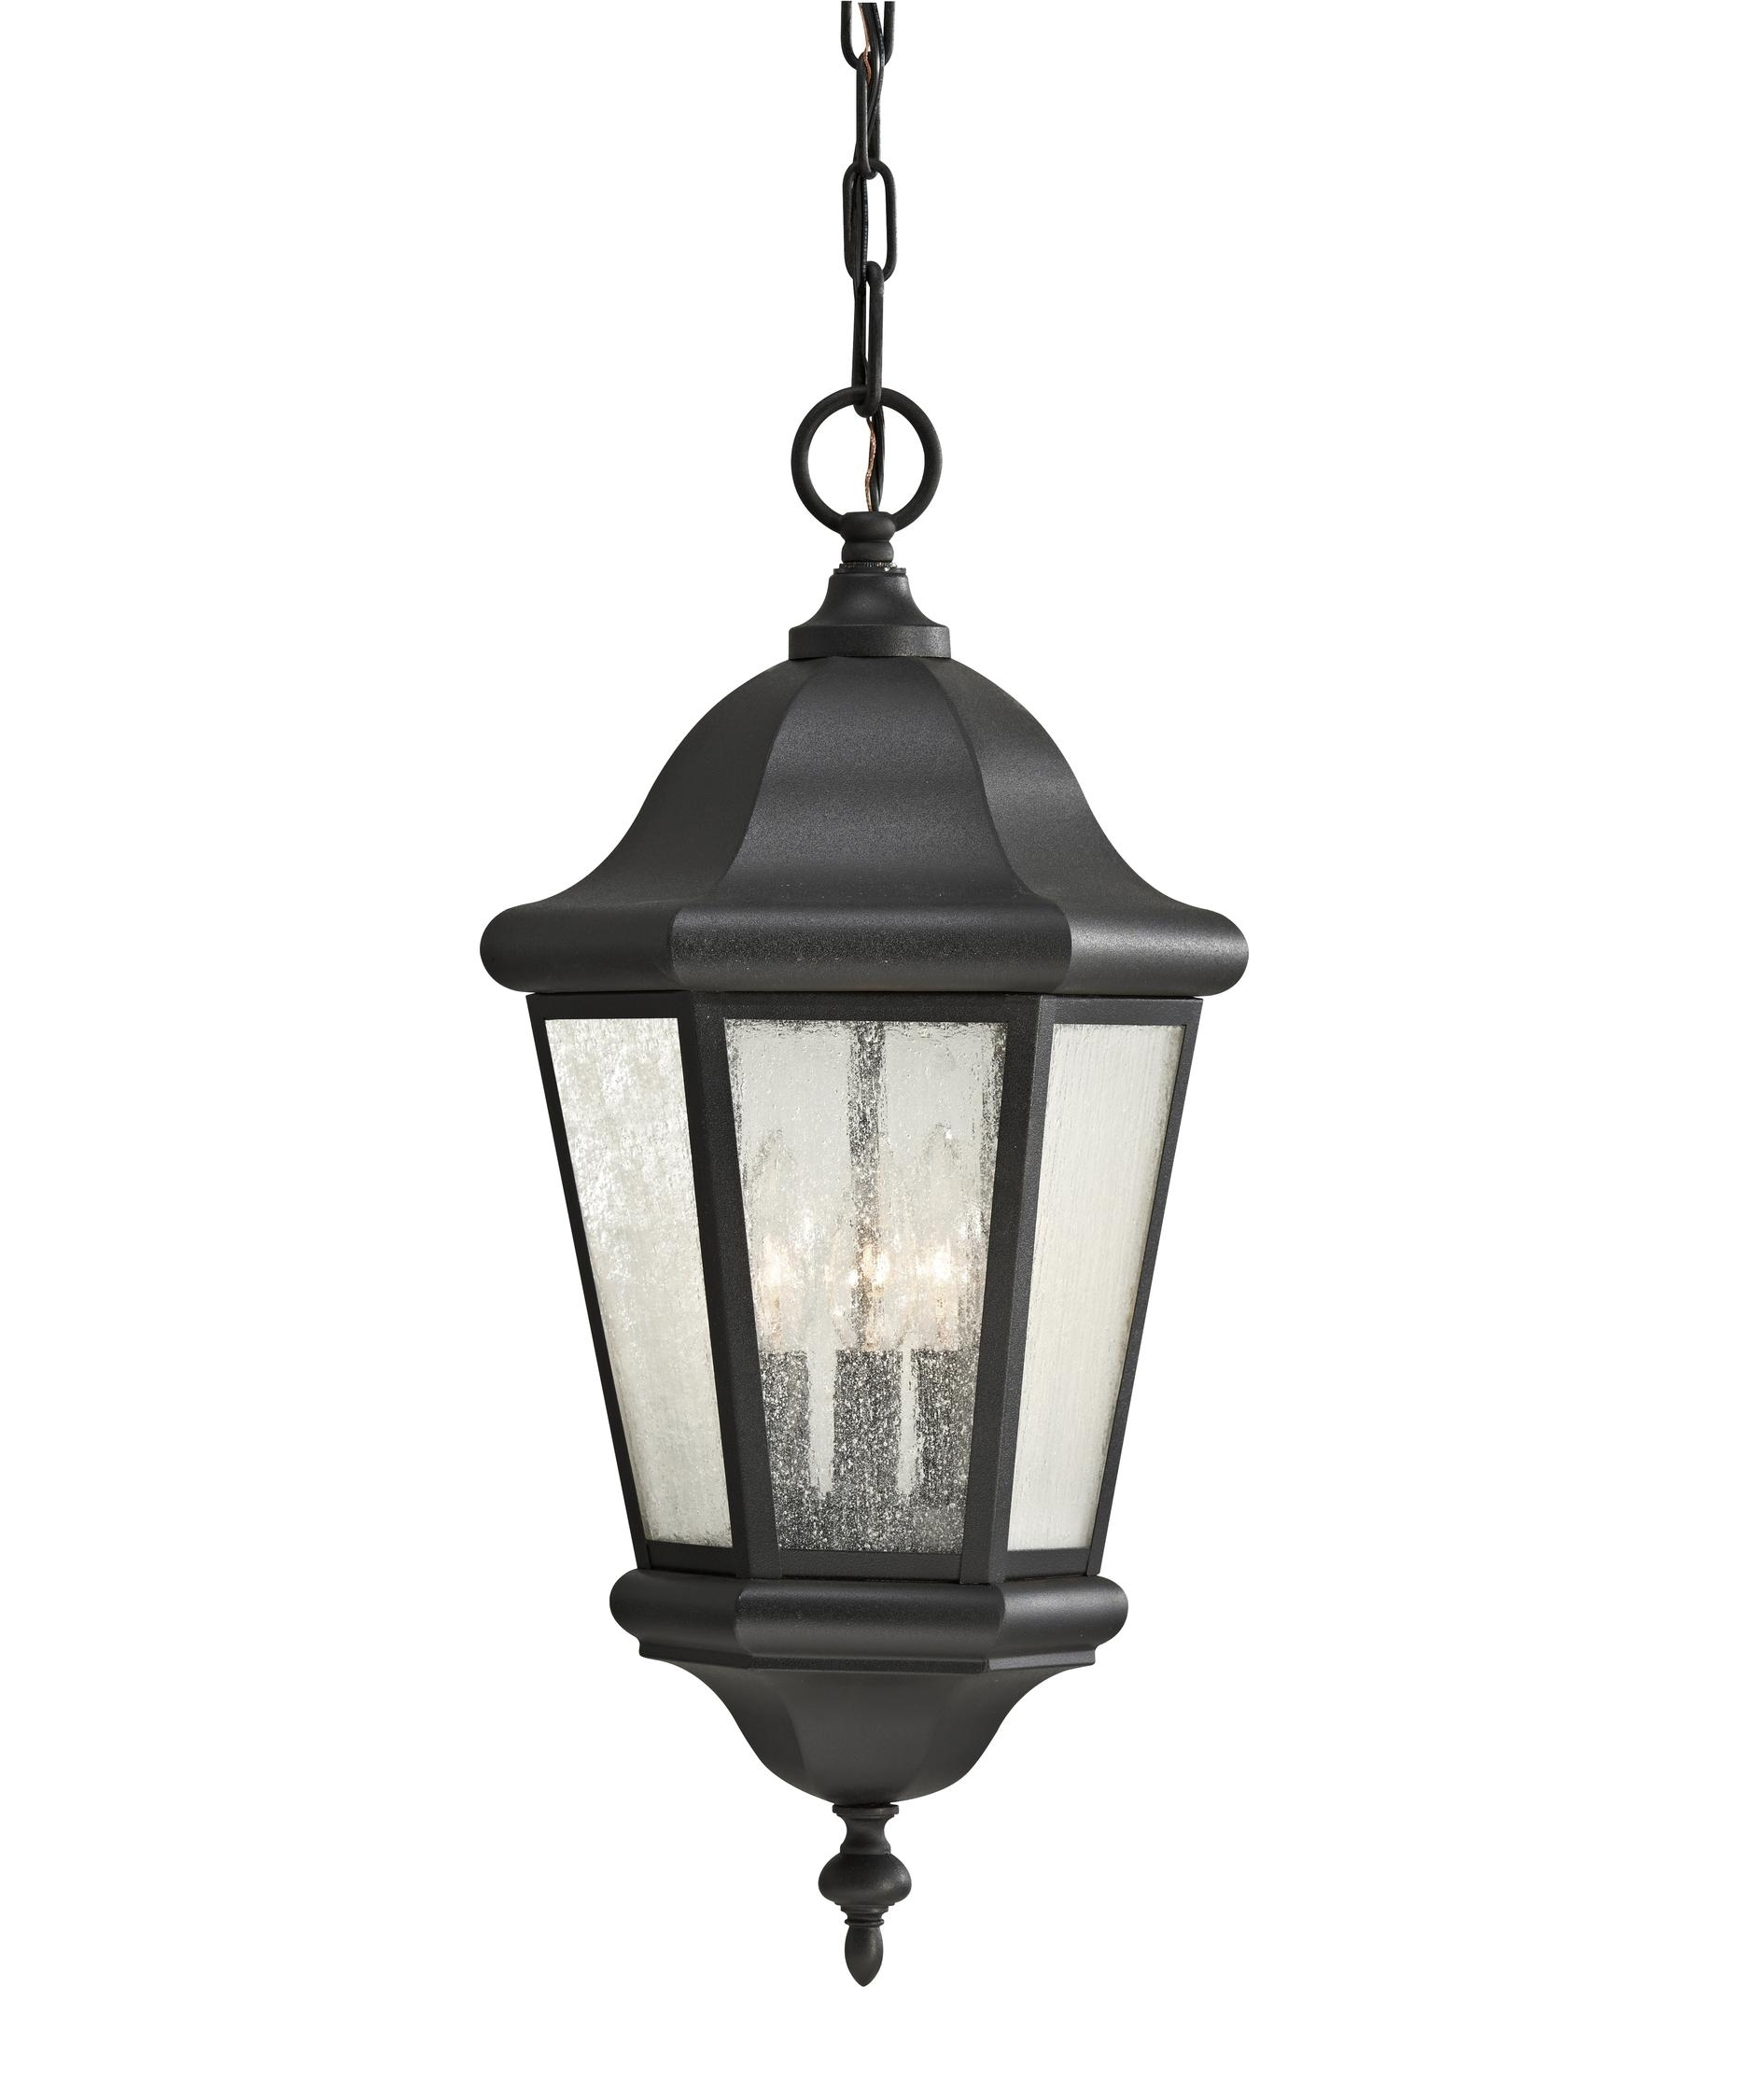 Newest Solar Powered Outdoor Hanging Lanterns In Outdoor : Decorative 2 Filigree Solar Lanterns Perfect For Patio Or (Gallery 16 of 20)